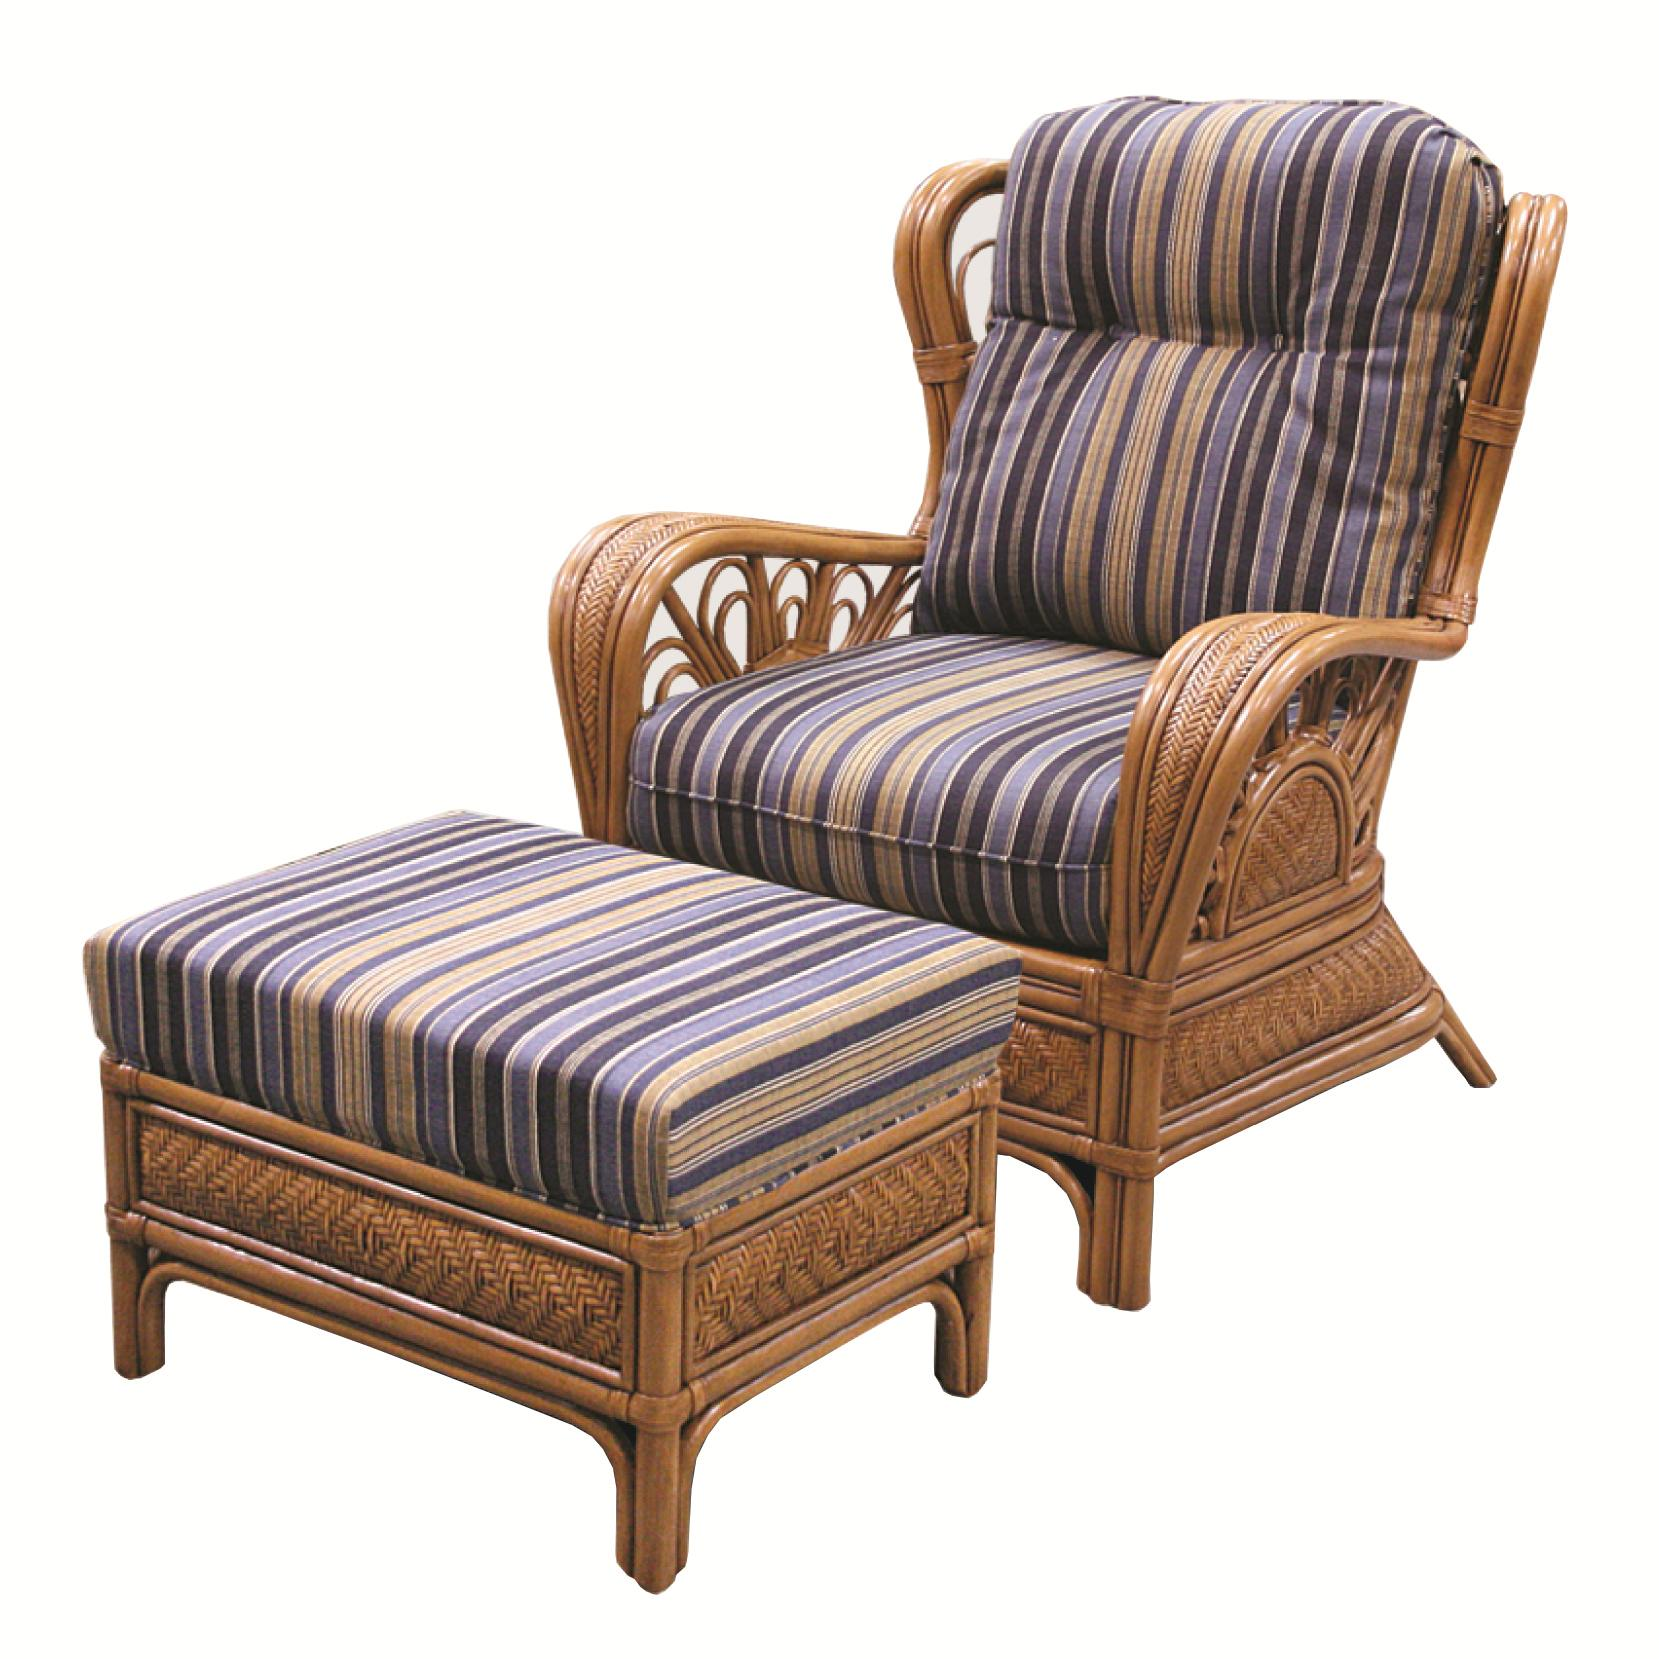 321 Collection Wicker Rattan Chair and Ottoman by Capris Furniture at Esprit Decor Home Furnishings